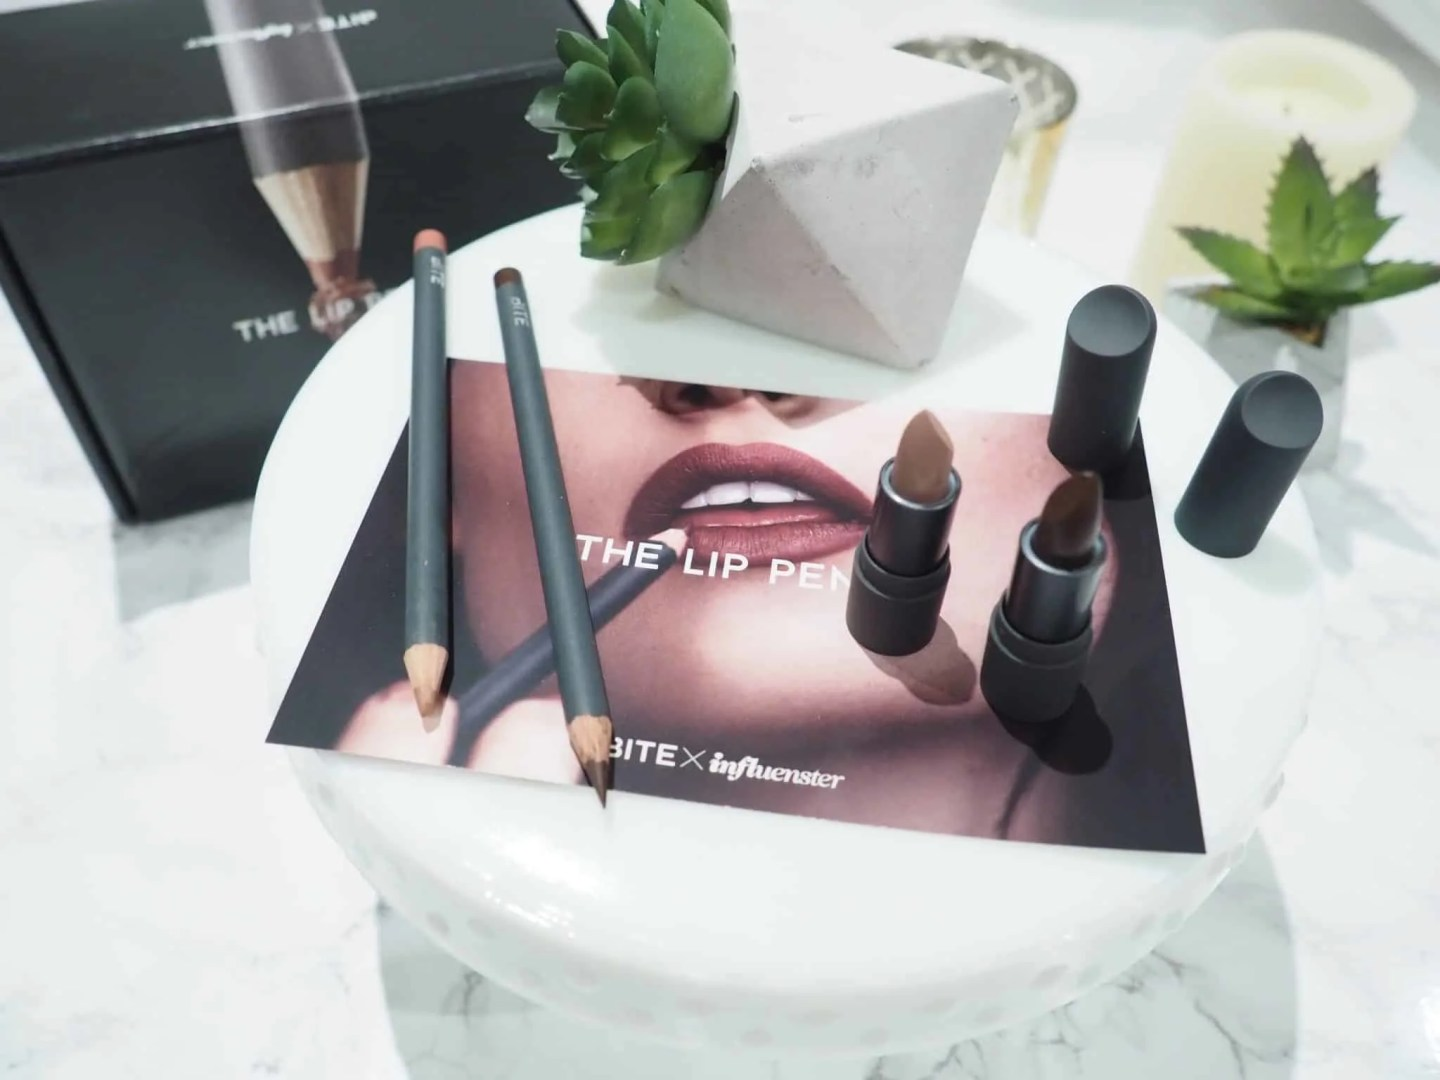 The Lip Pencil by BITE Beauty